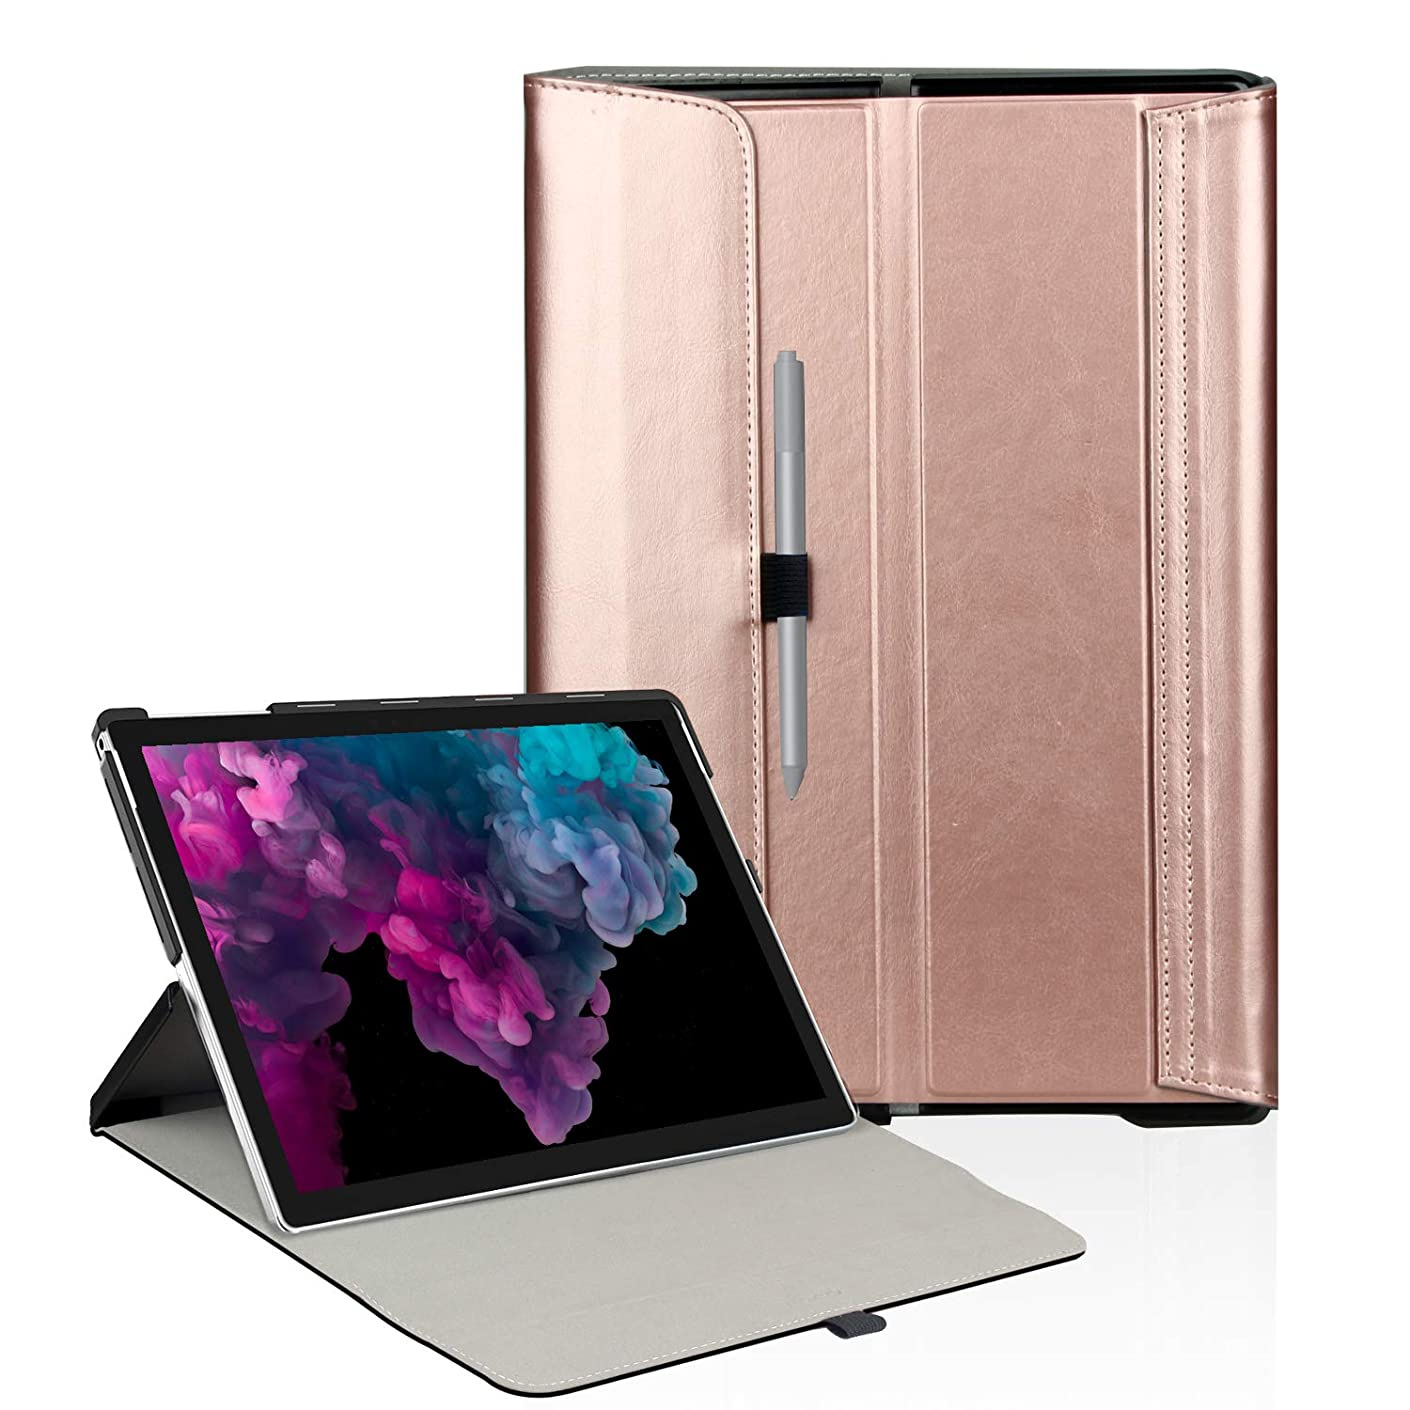 FIREDOG for Surface Pro 6 Case, Leather for Microsoft 12.3 Surface Pro 6 / Pro 2017(Pro 5) / Pro LTE/Pro 4 Tablet Cover Stand with Type Cover Keyboard (Rose Gold) …